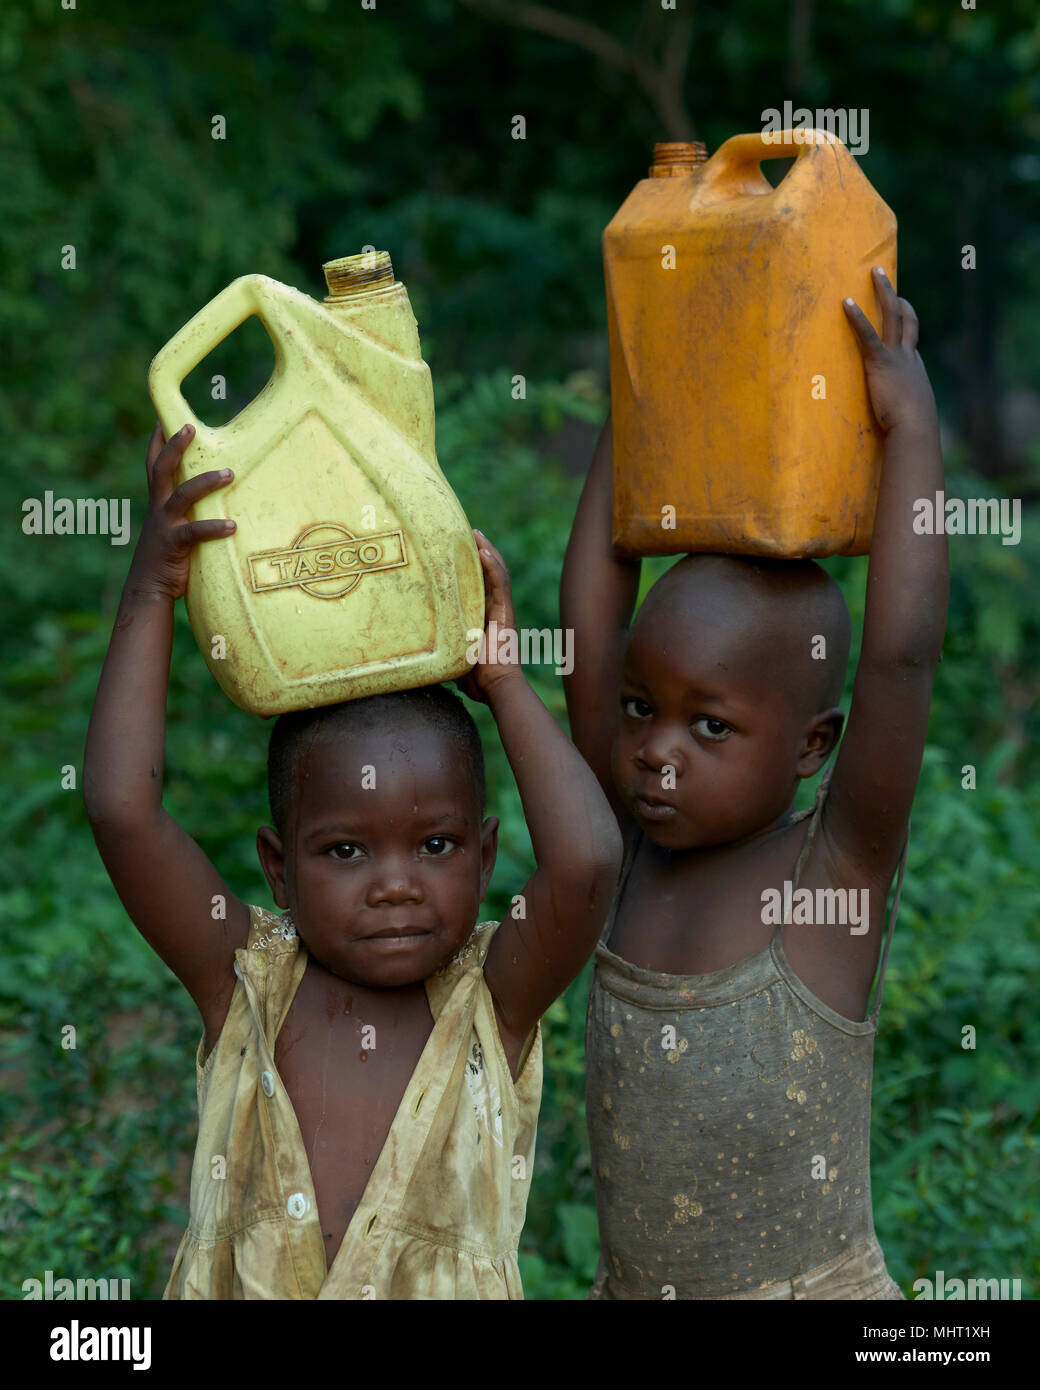 Children displaced by conflict carry water in a camp for internally displaced persons that formed around the Catholic church in Riimenze, South Sudan. - Stock Image